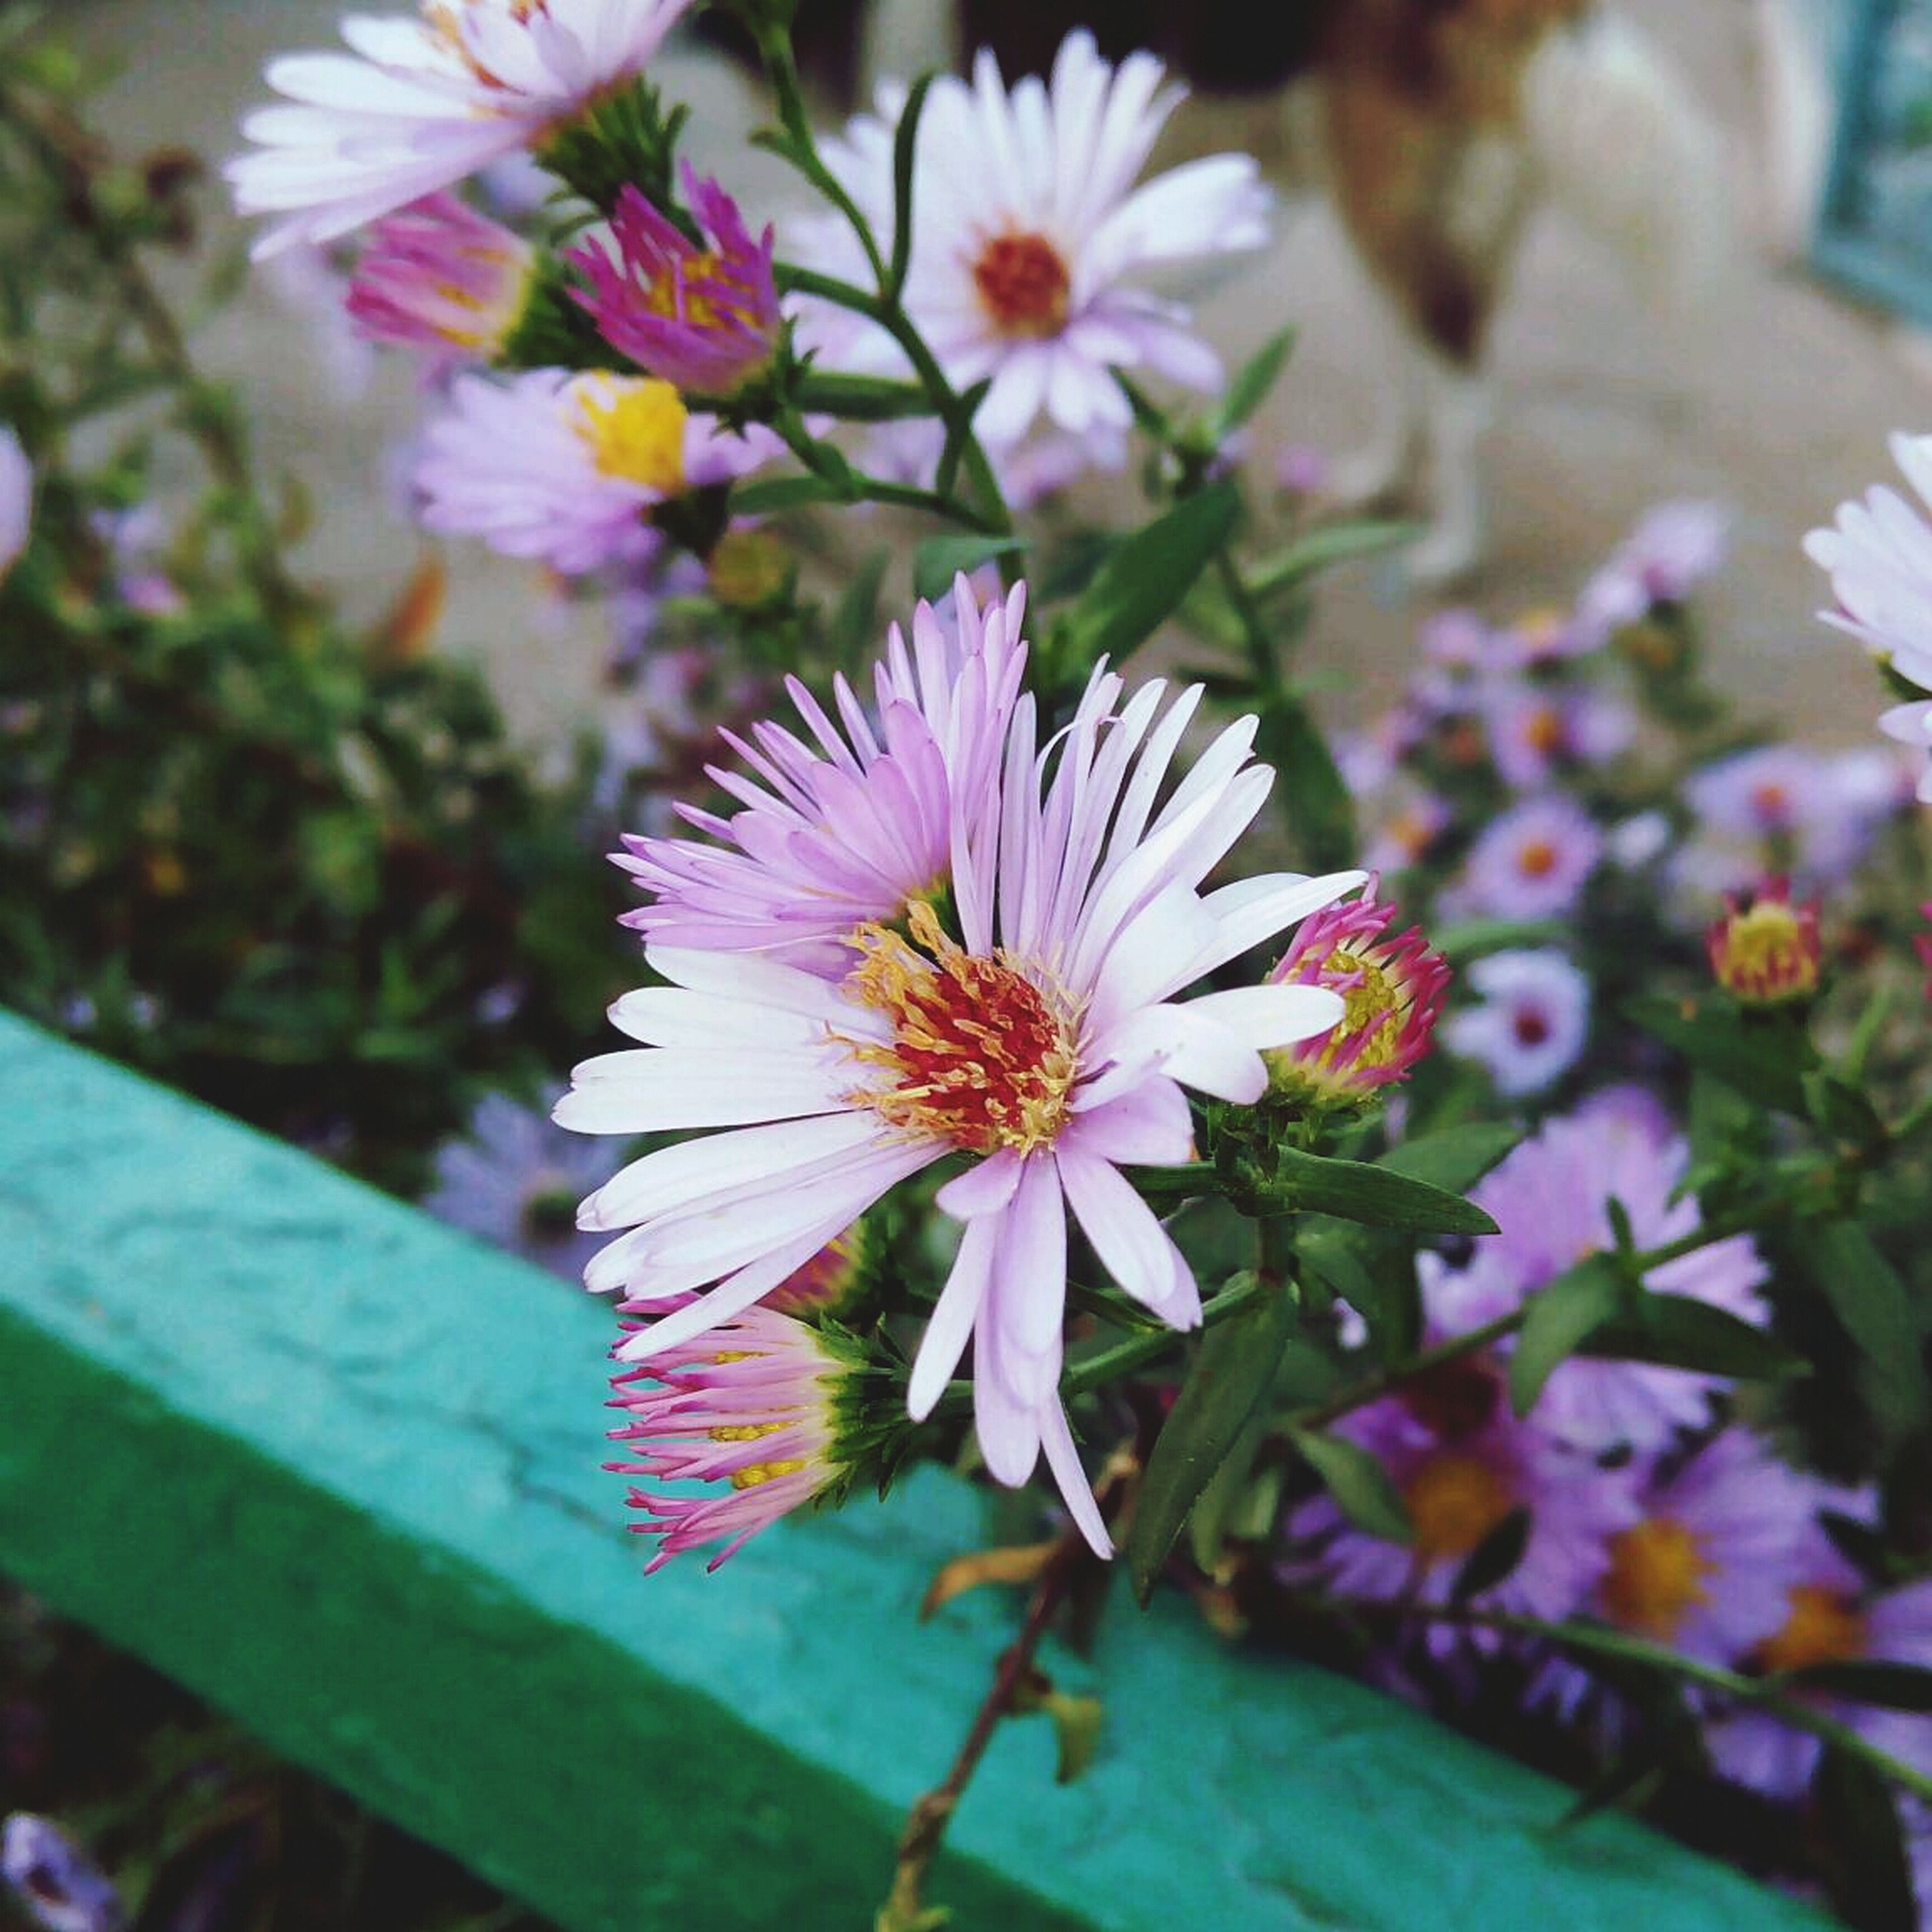 flower, petal, freshness, fragility, flower head, growth, beauty in nature, blooming, pollen, close-up, focus on foreground, nature, plant, in bloom, purple, blossom, high angle view, stamen, leaf, pink color